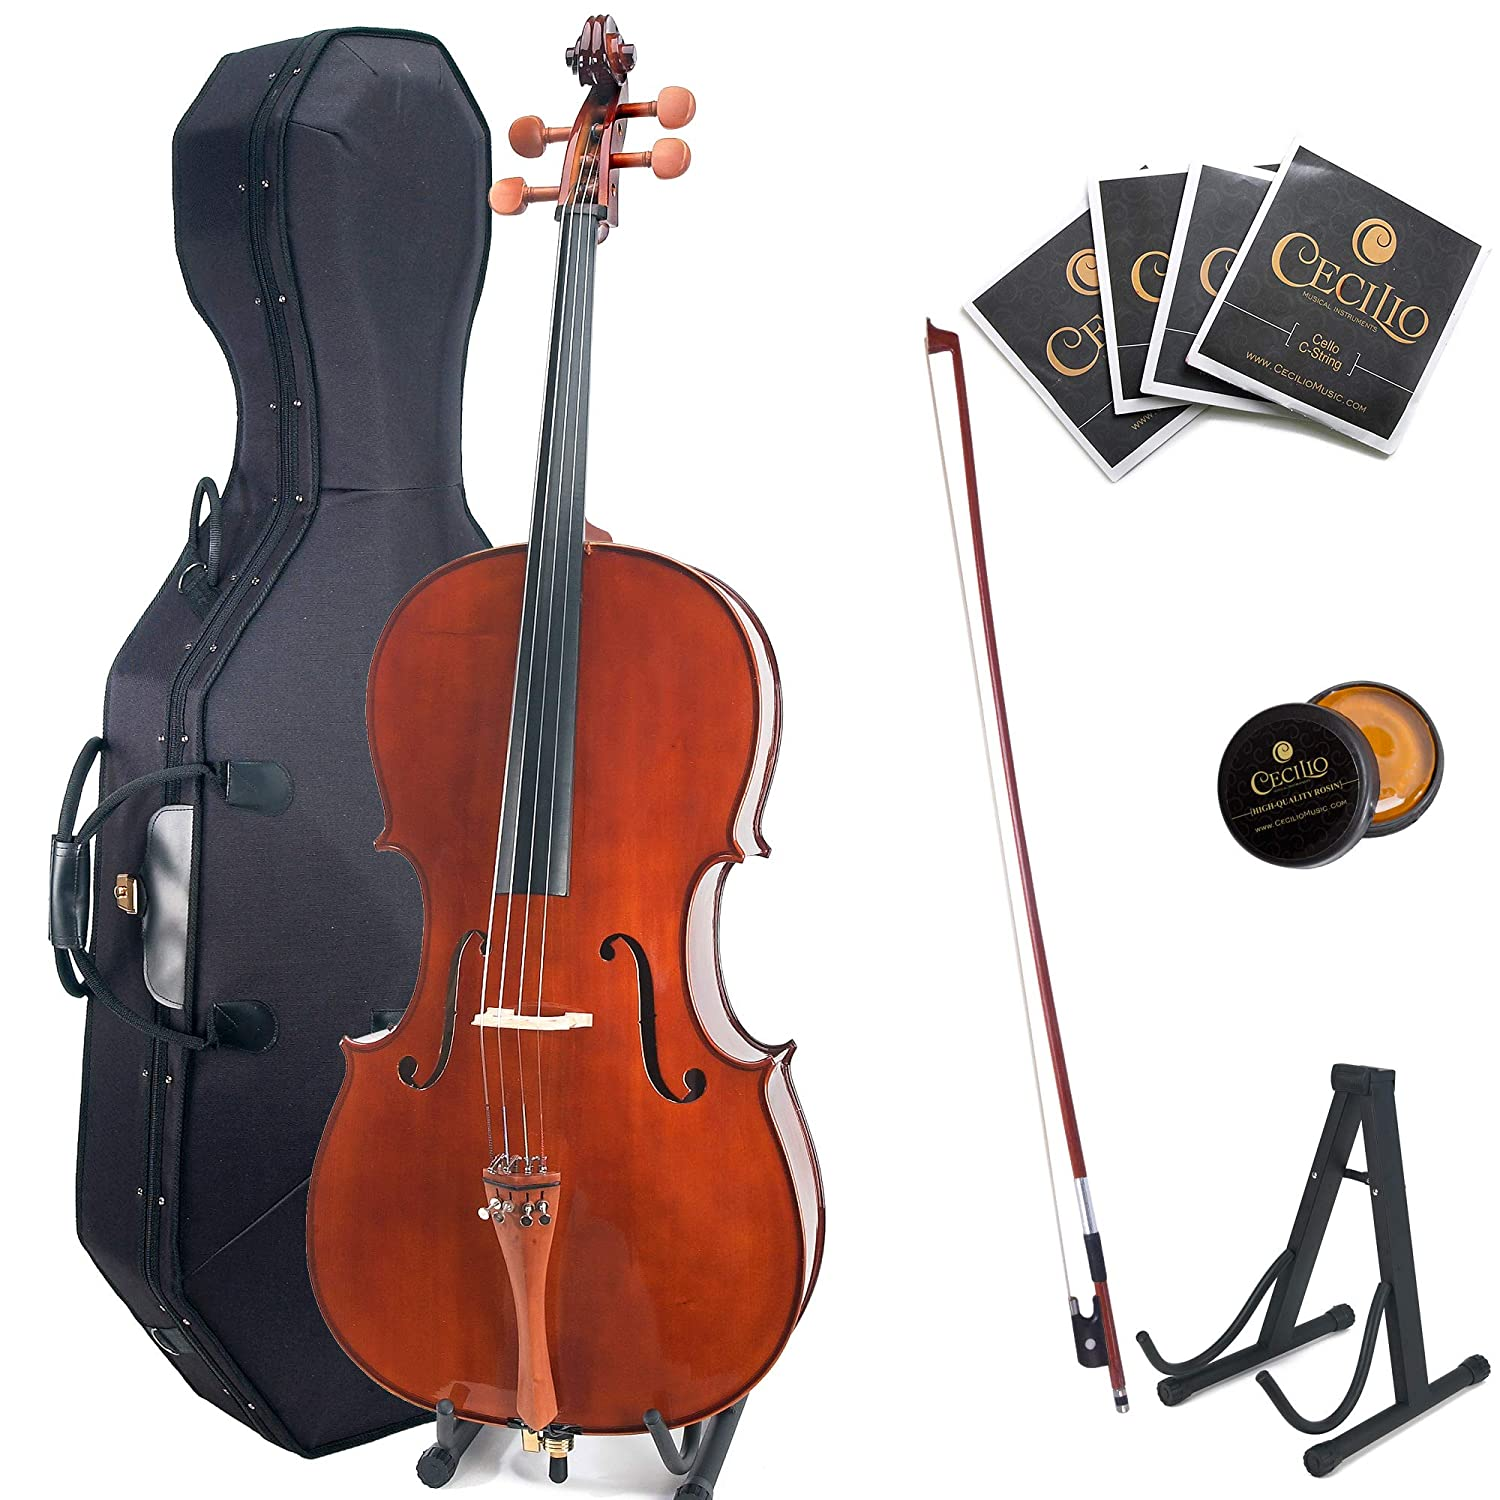 Cecilio CCO-300 Solid Wood Cello with Hard & Soft Case, Stand, Bow, Rosin, Bridge and Extra Set of Strings, Size 4/4 (Full Size) Cecilio Musical Instruments 4/4CCO-300